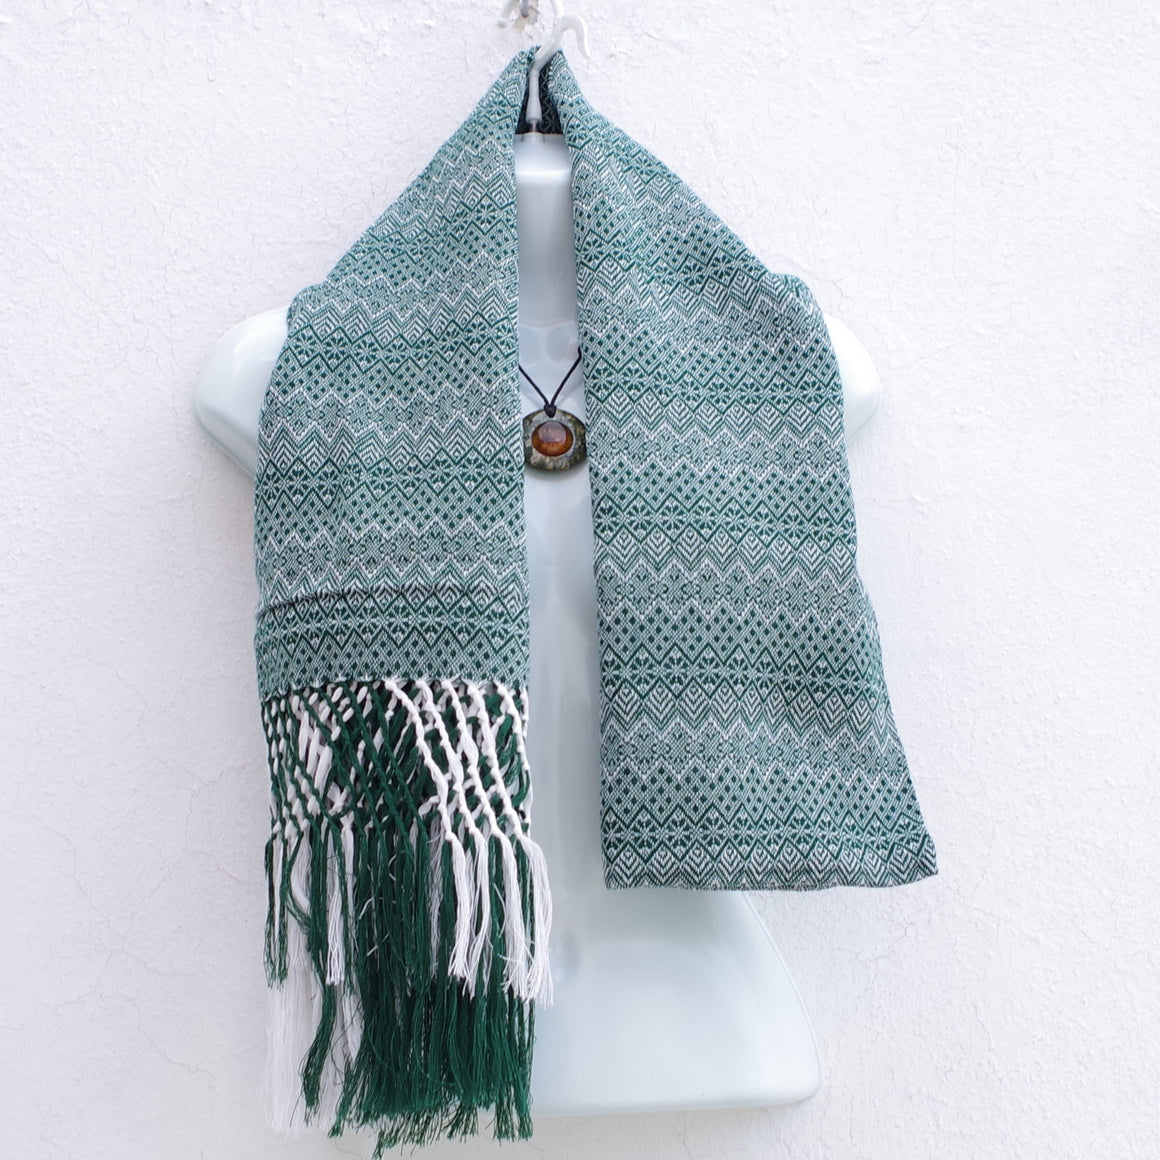 Mayan Copal Green and White Mexican Rebozo Shawl with Fringes Embroidered with Cotton and Yard